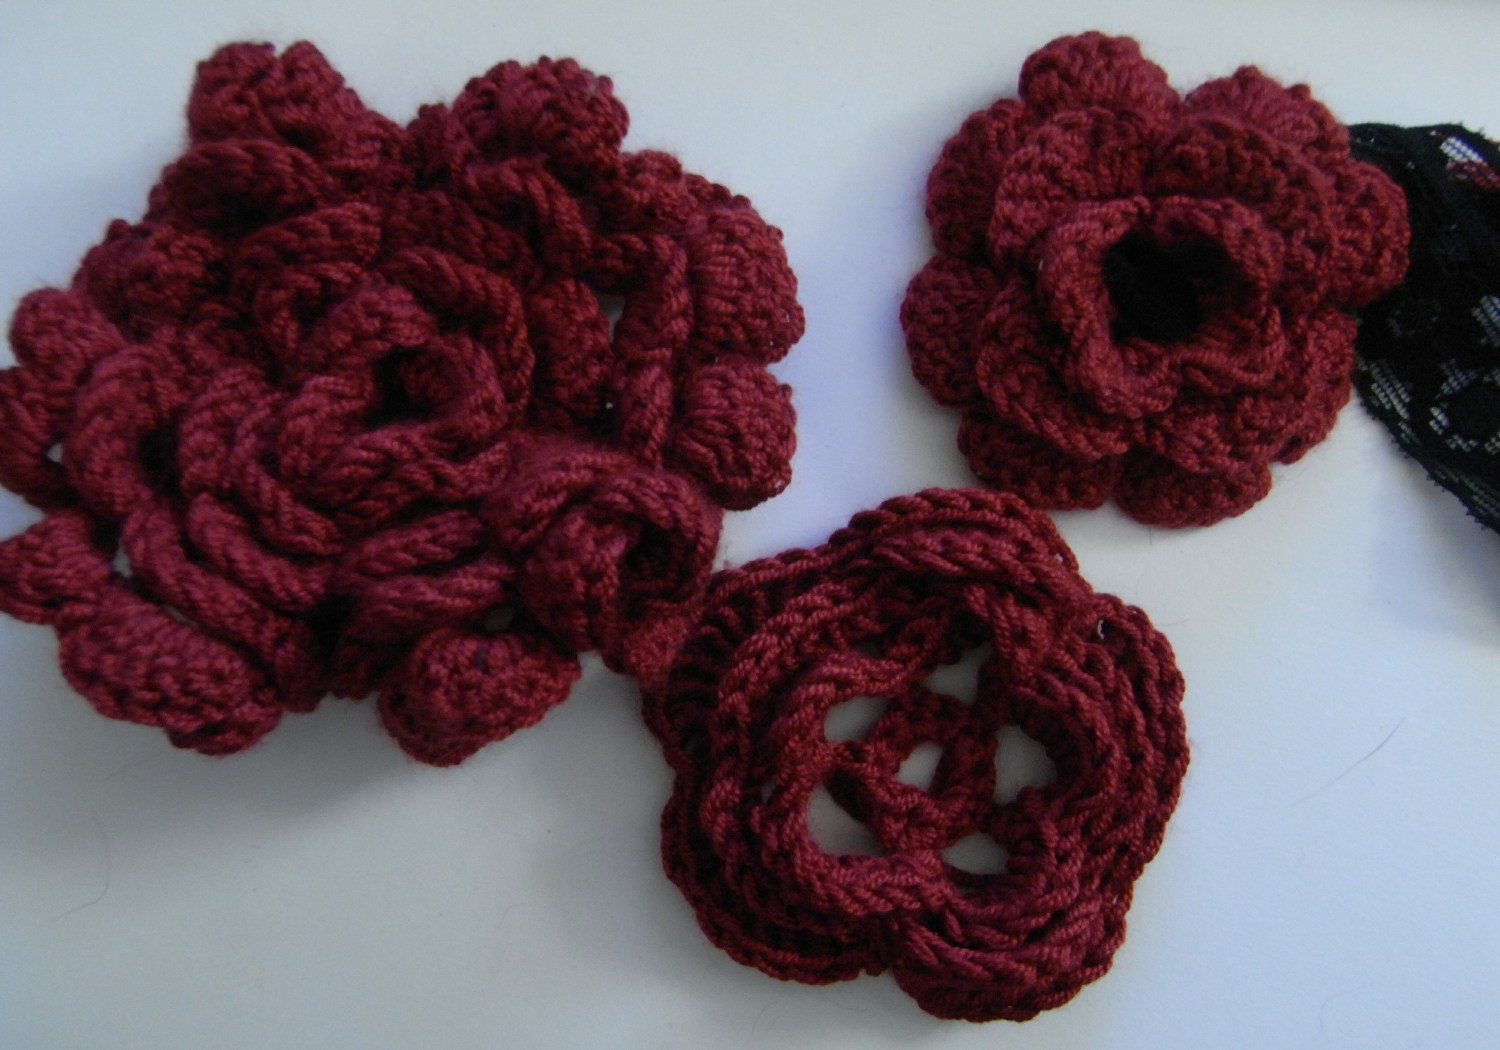 Crochet Flower Pattern Instructions : saraccino: Crochet flowers...